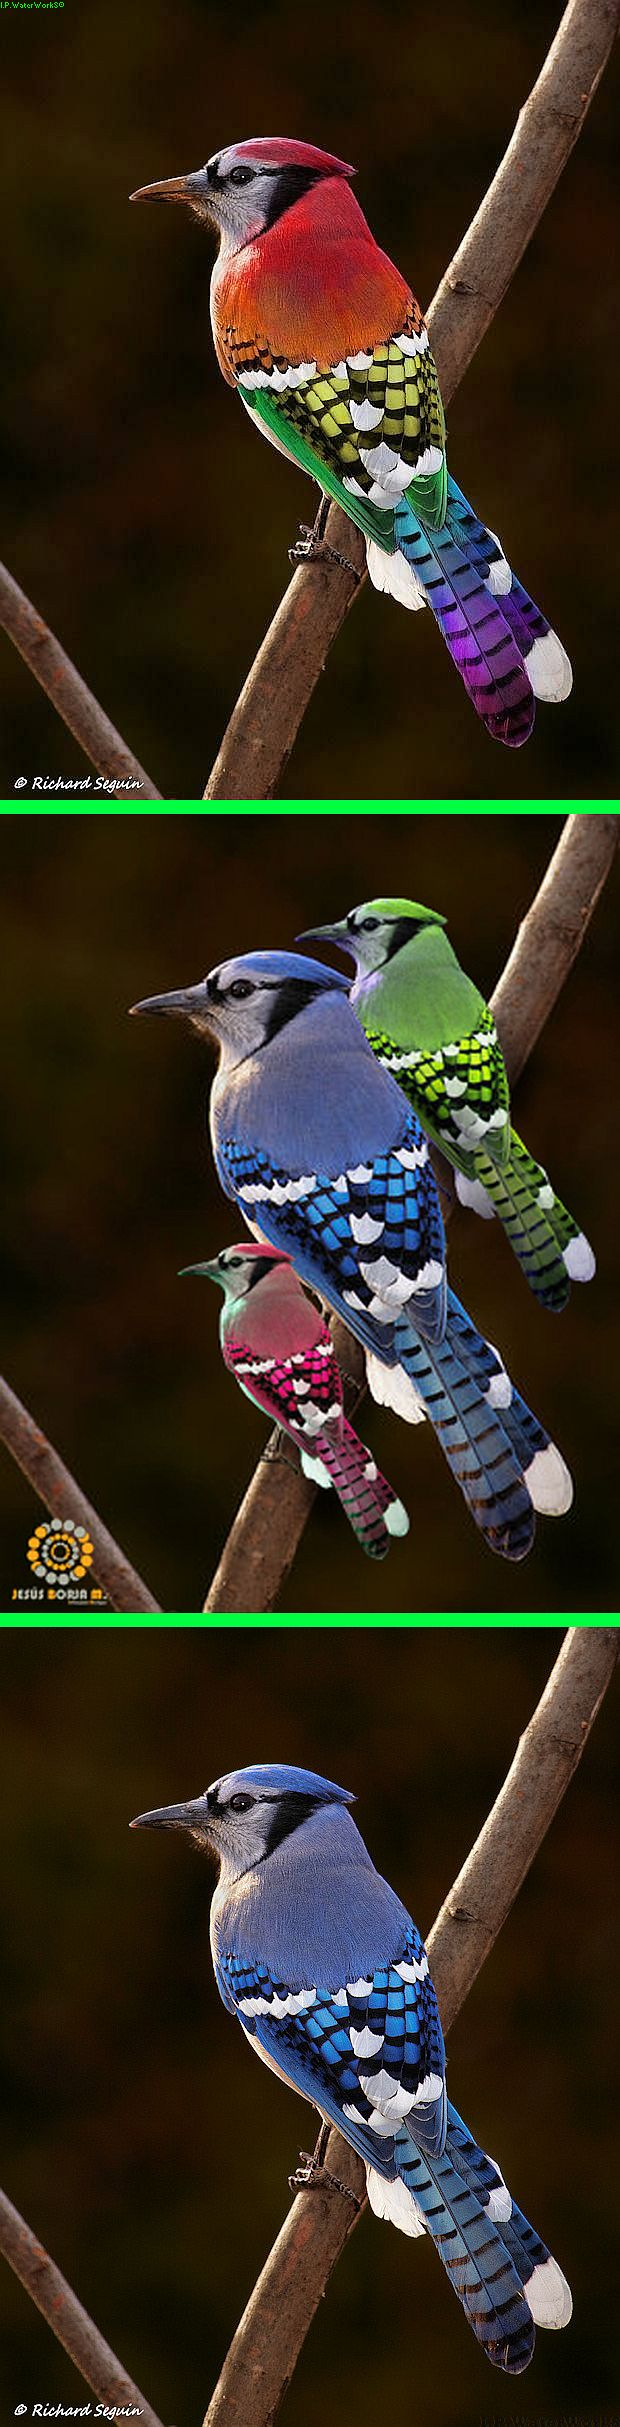 Fake - Rainbow Bird, etc. - The original image of a Blue Jay is on the bottom.